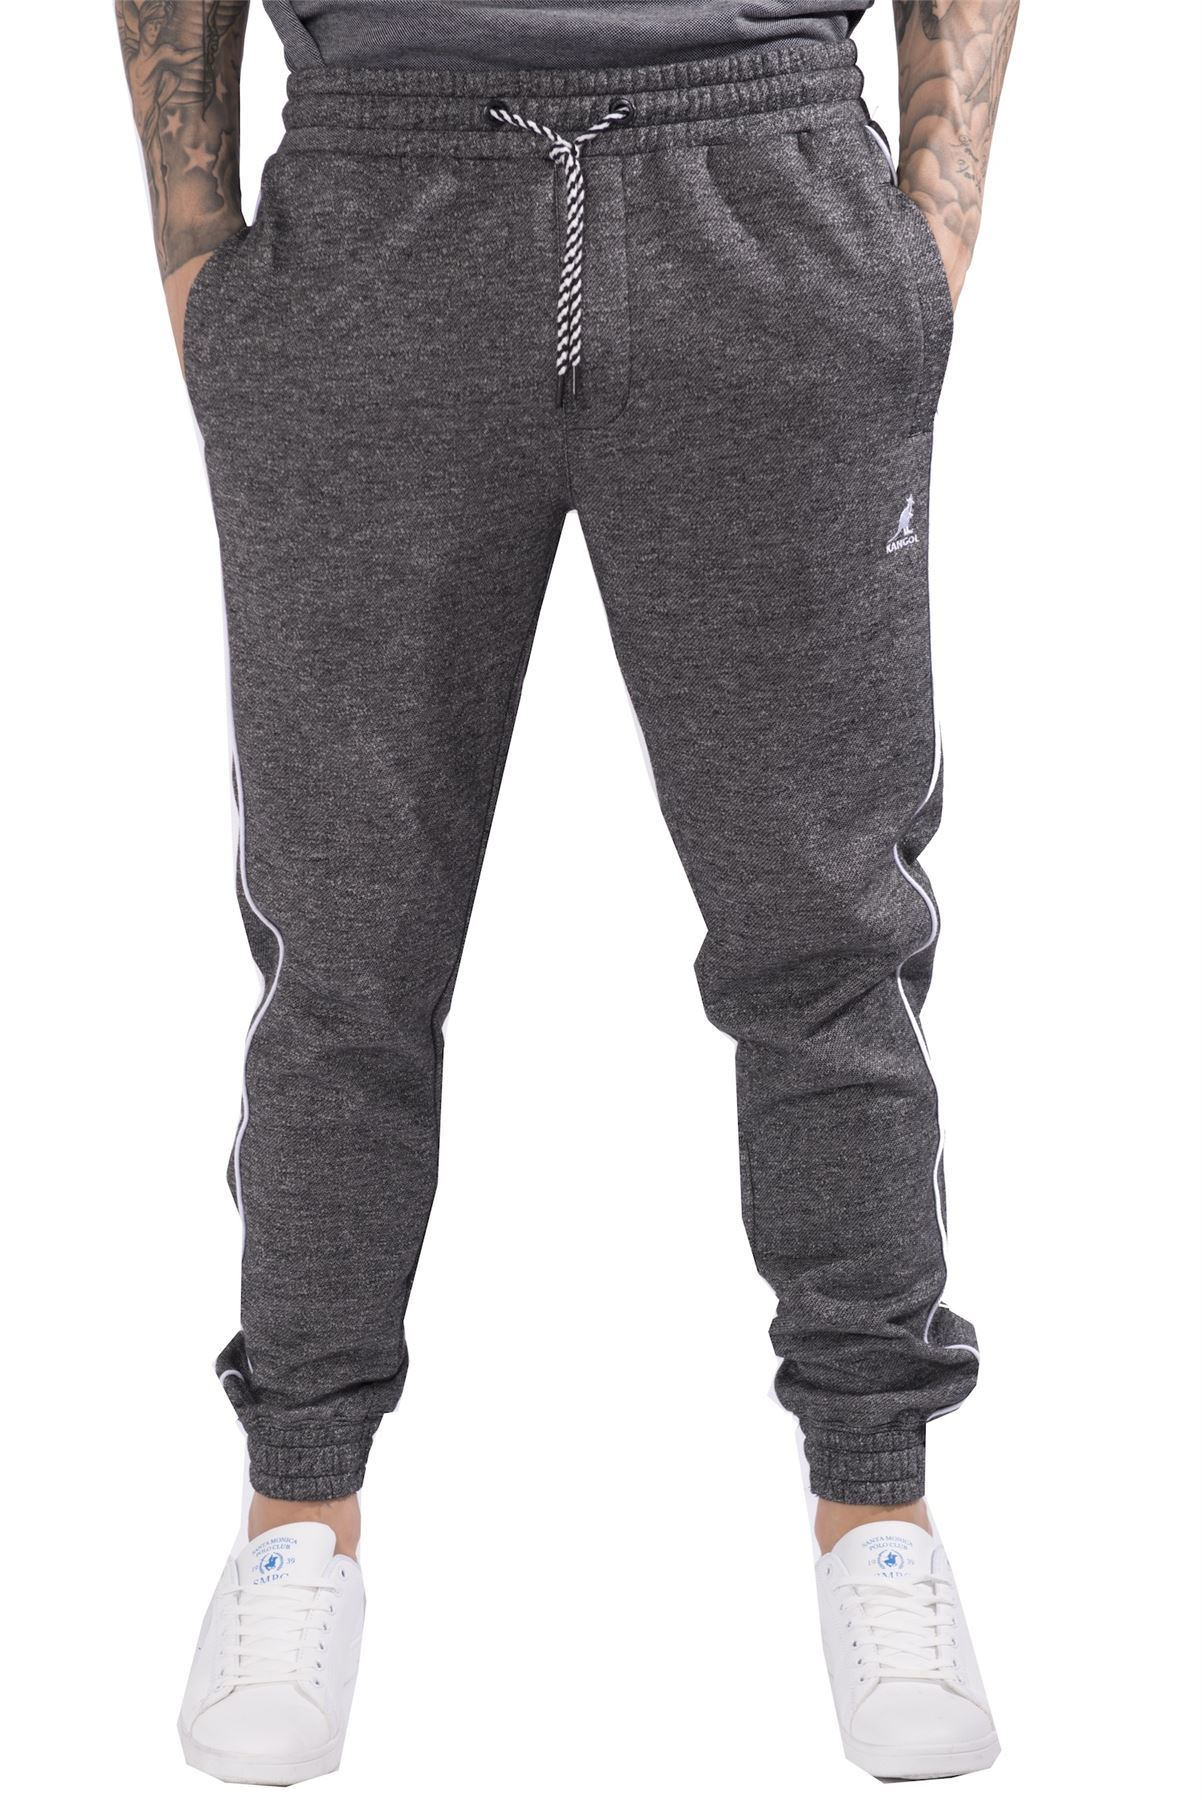 Find great deals on eBay for womens cuffed sweatpants. Shop with confidence.